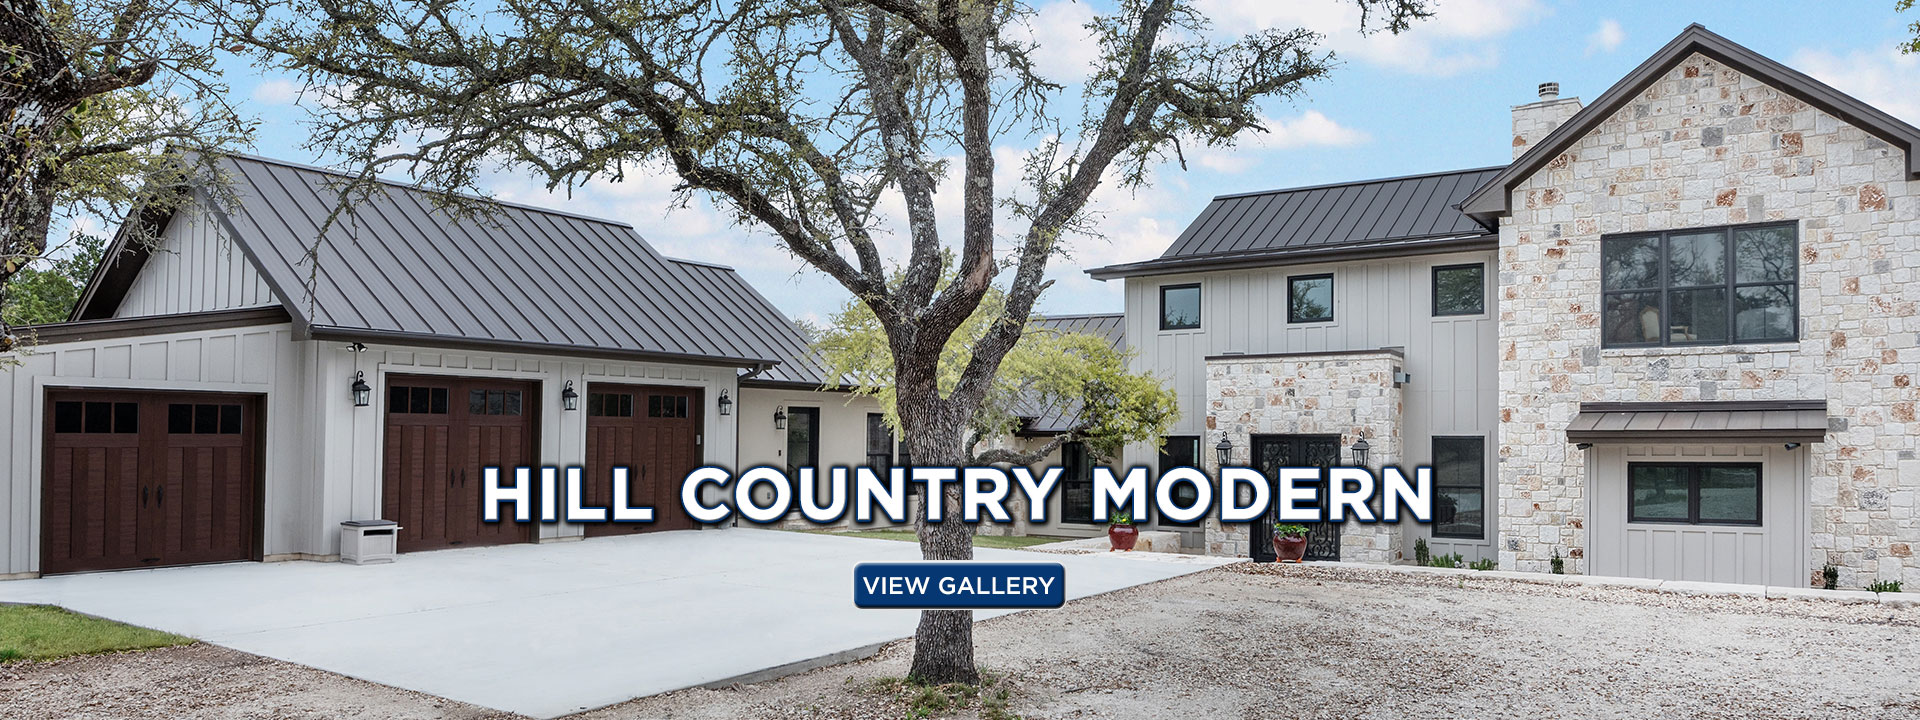 Hill Country Modern, San Antonio Custom Home Builder